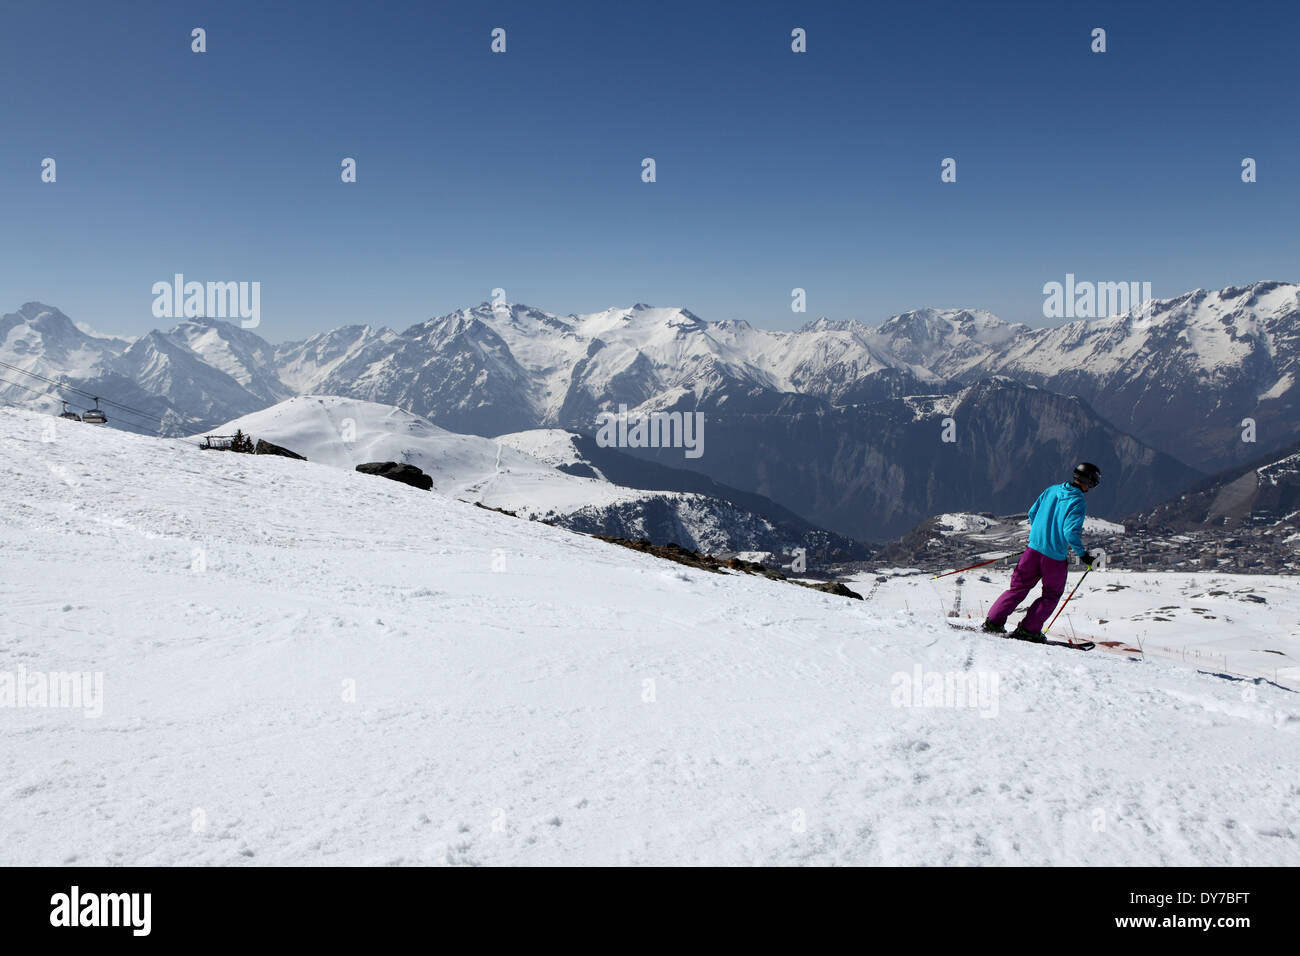 A snow covered Alpine skiing piste at Alpe d'Huez, France. - Stock Image